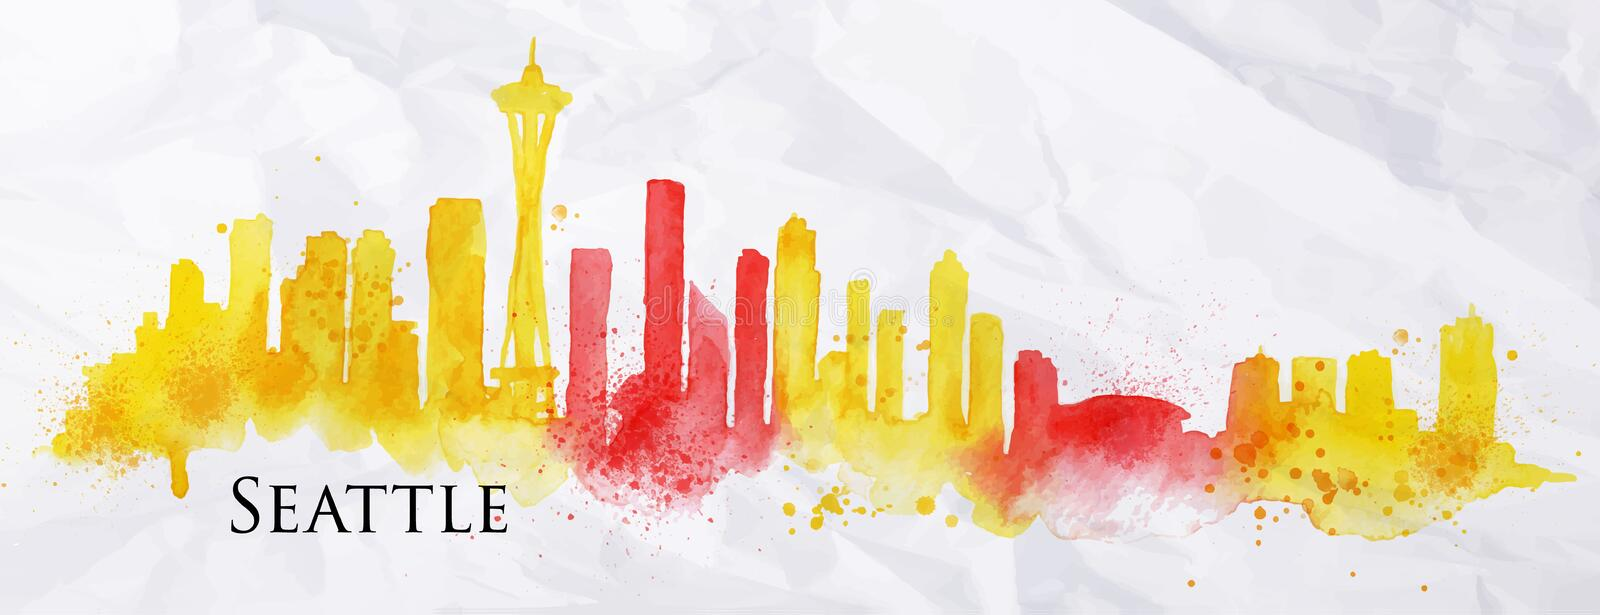 Silhouette watercolor Seattle royalty free illustration